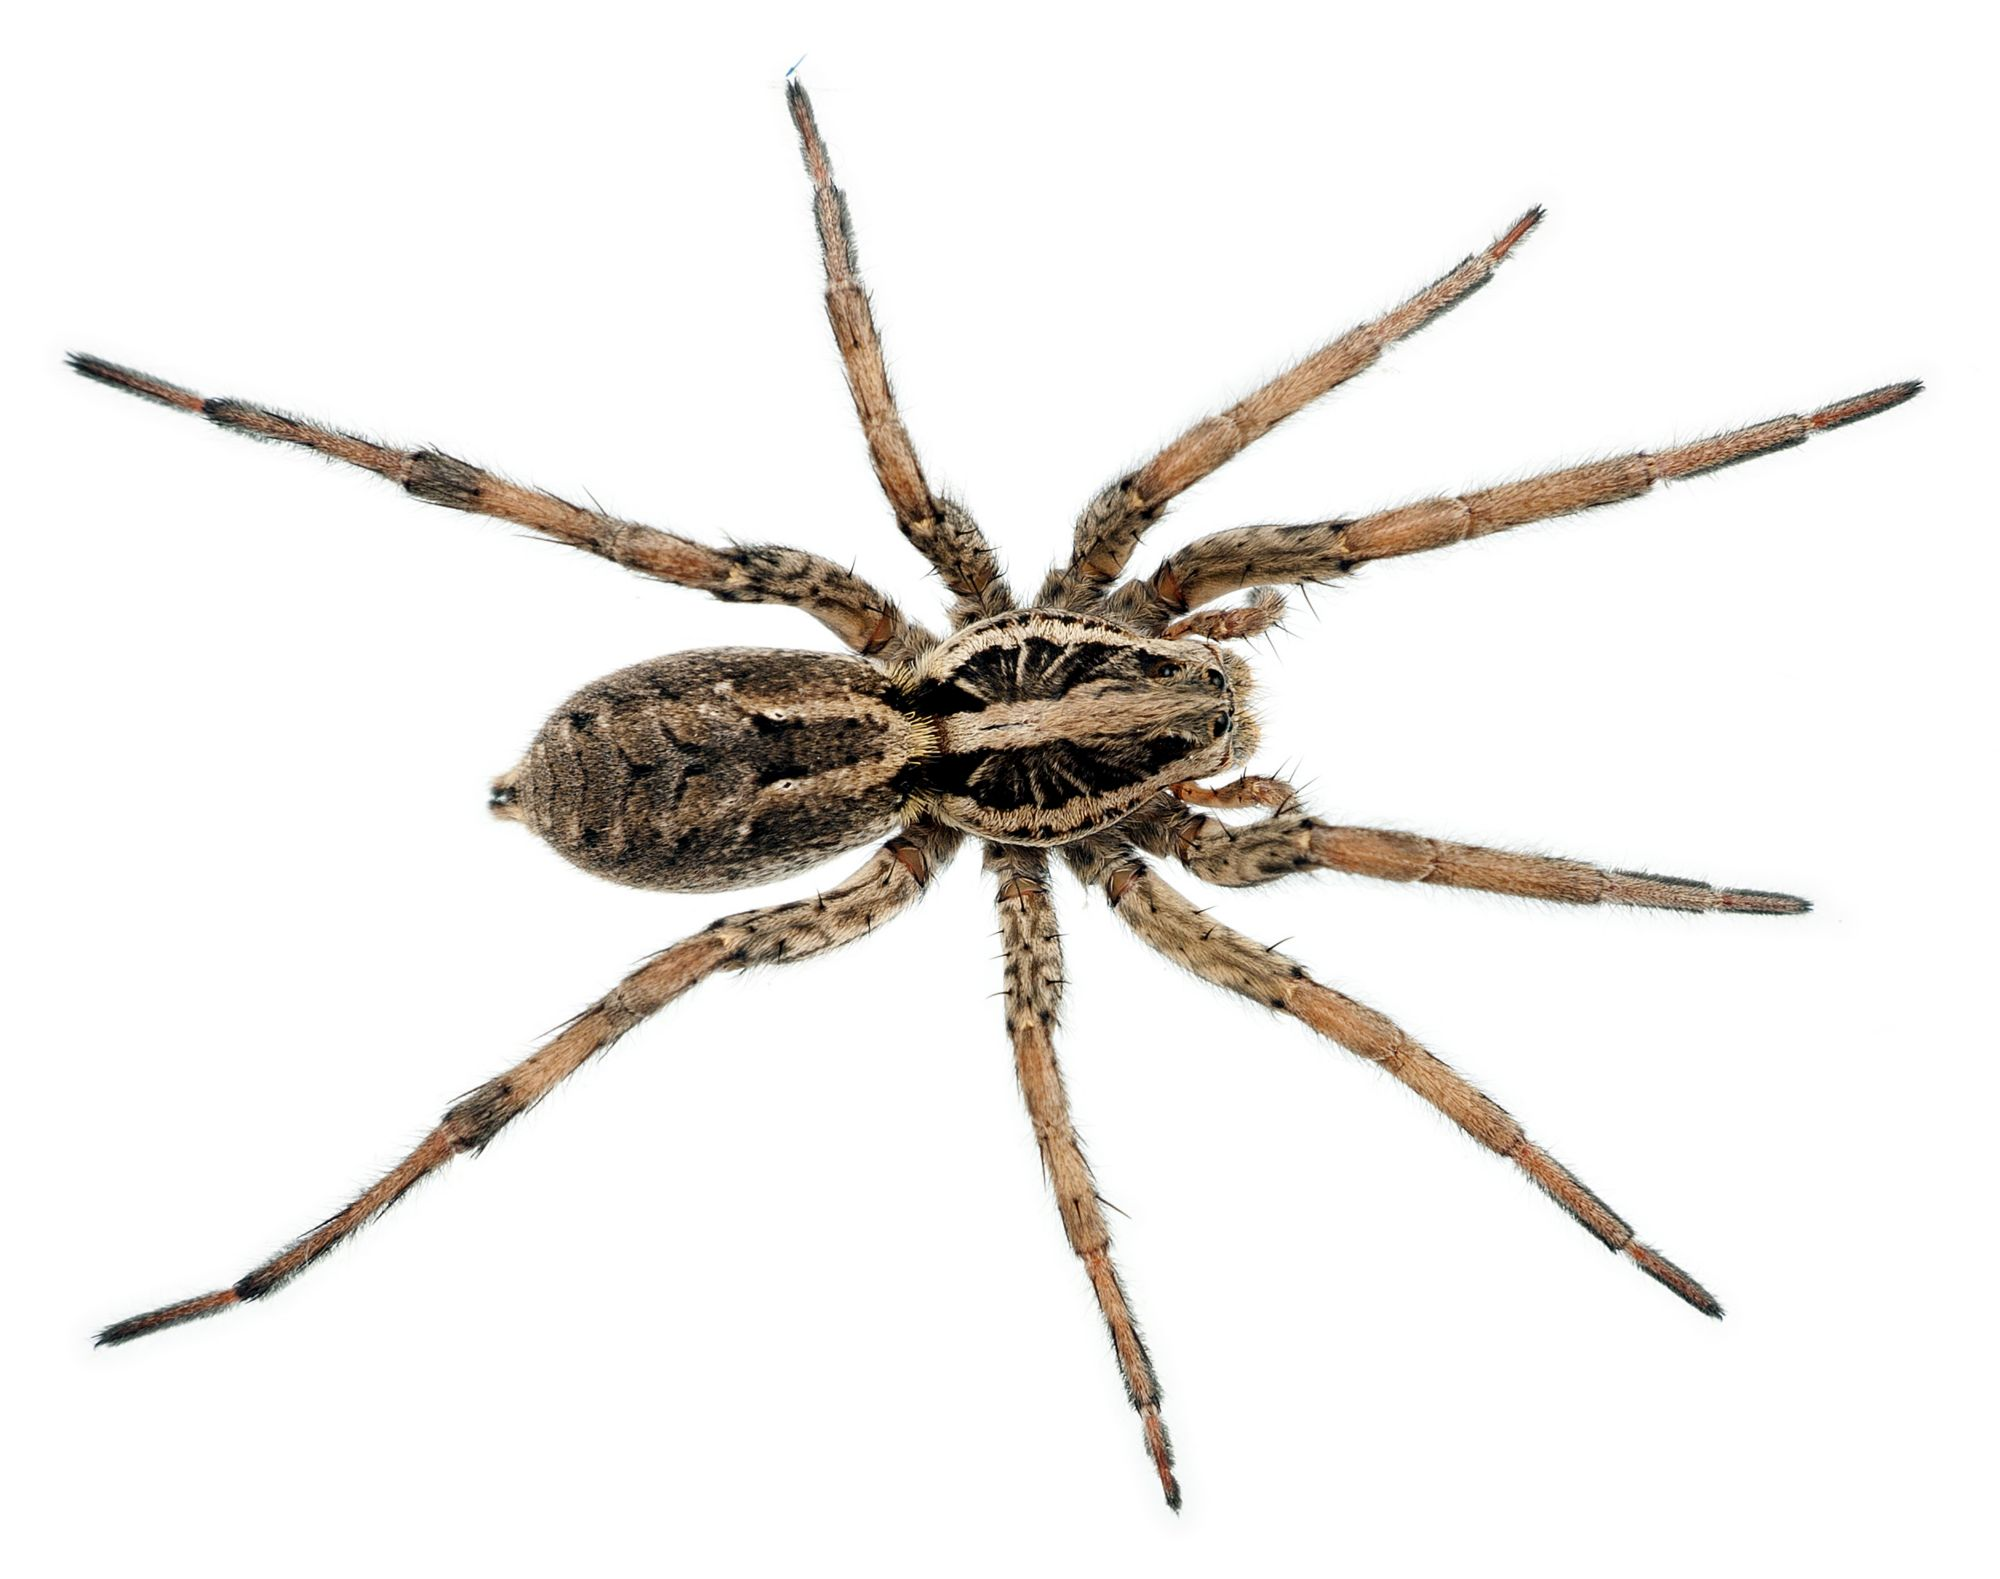 ter-insects-wolf-spider-article-2